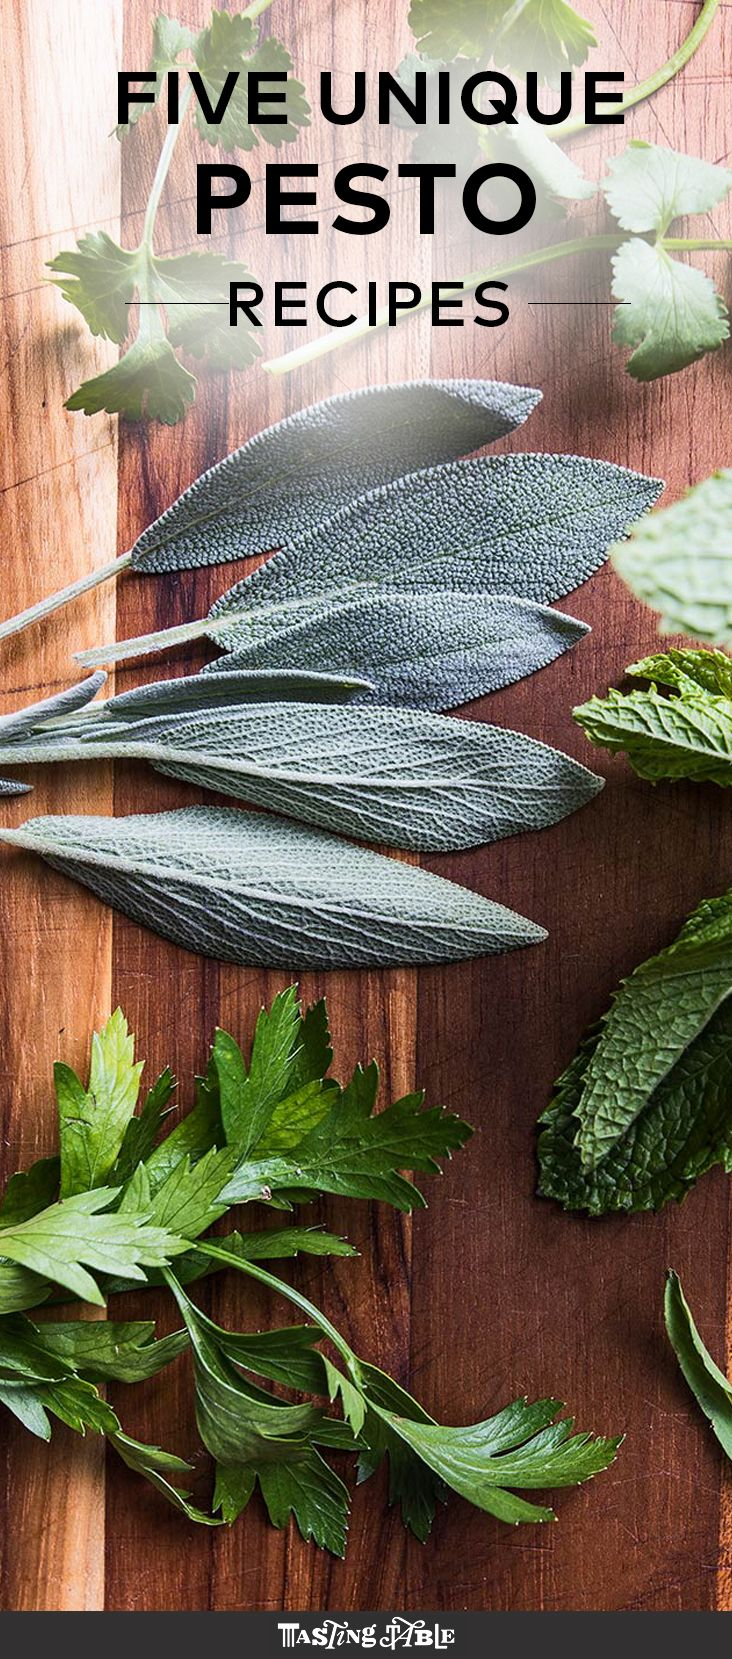 Go beyond basil and use parsley, mint, tarragon and more to make these five…